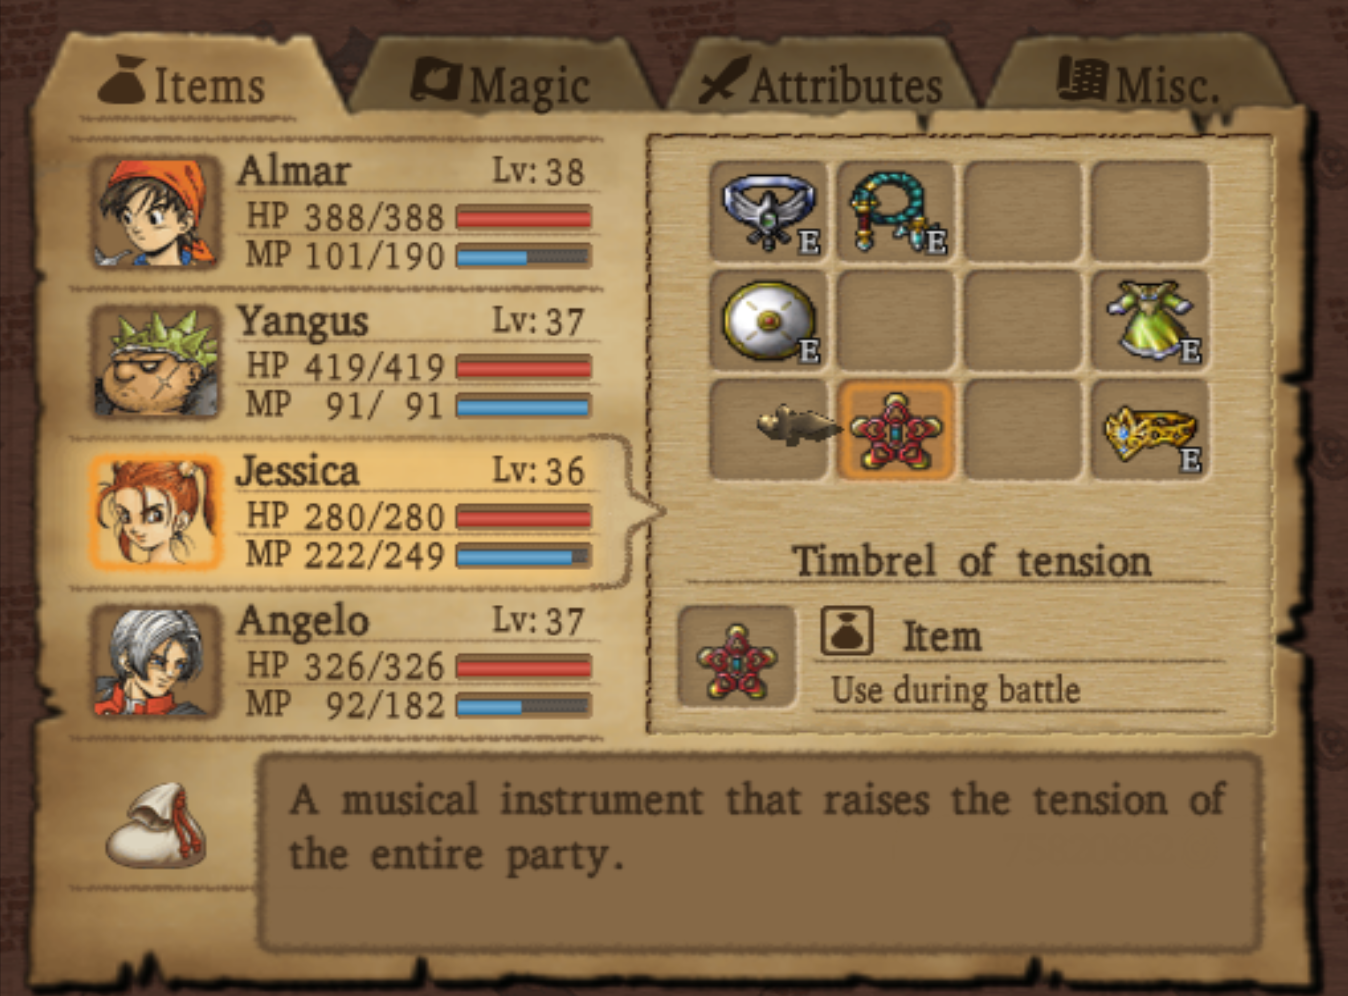 Timbrel of tension item